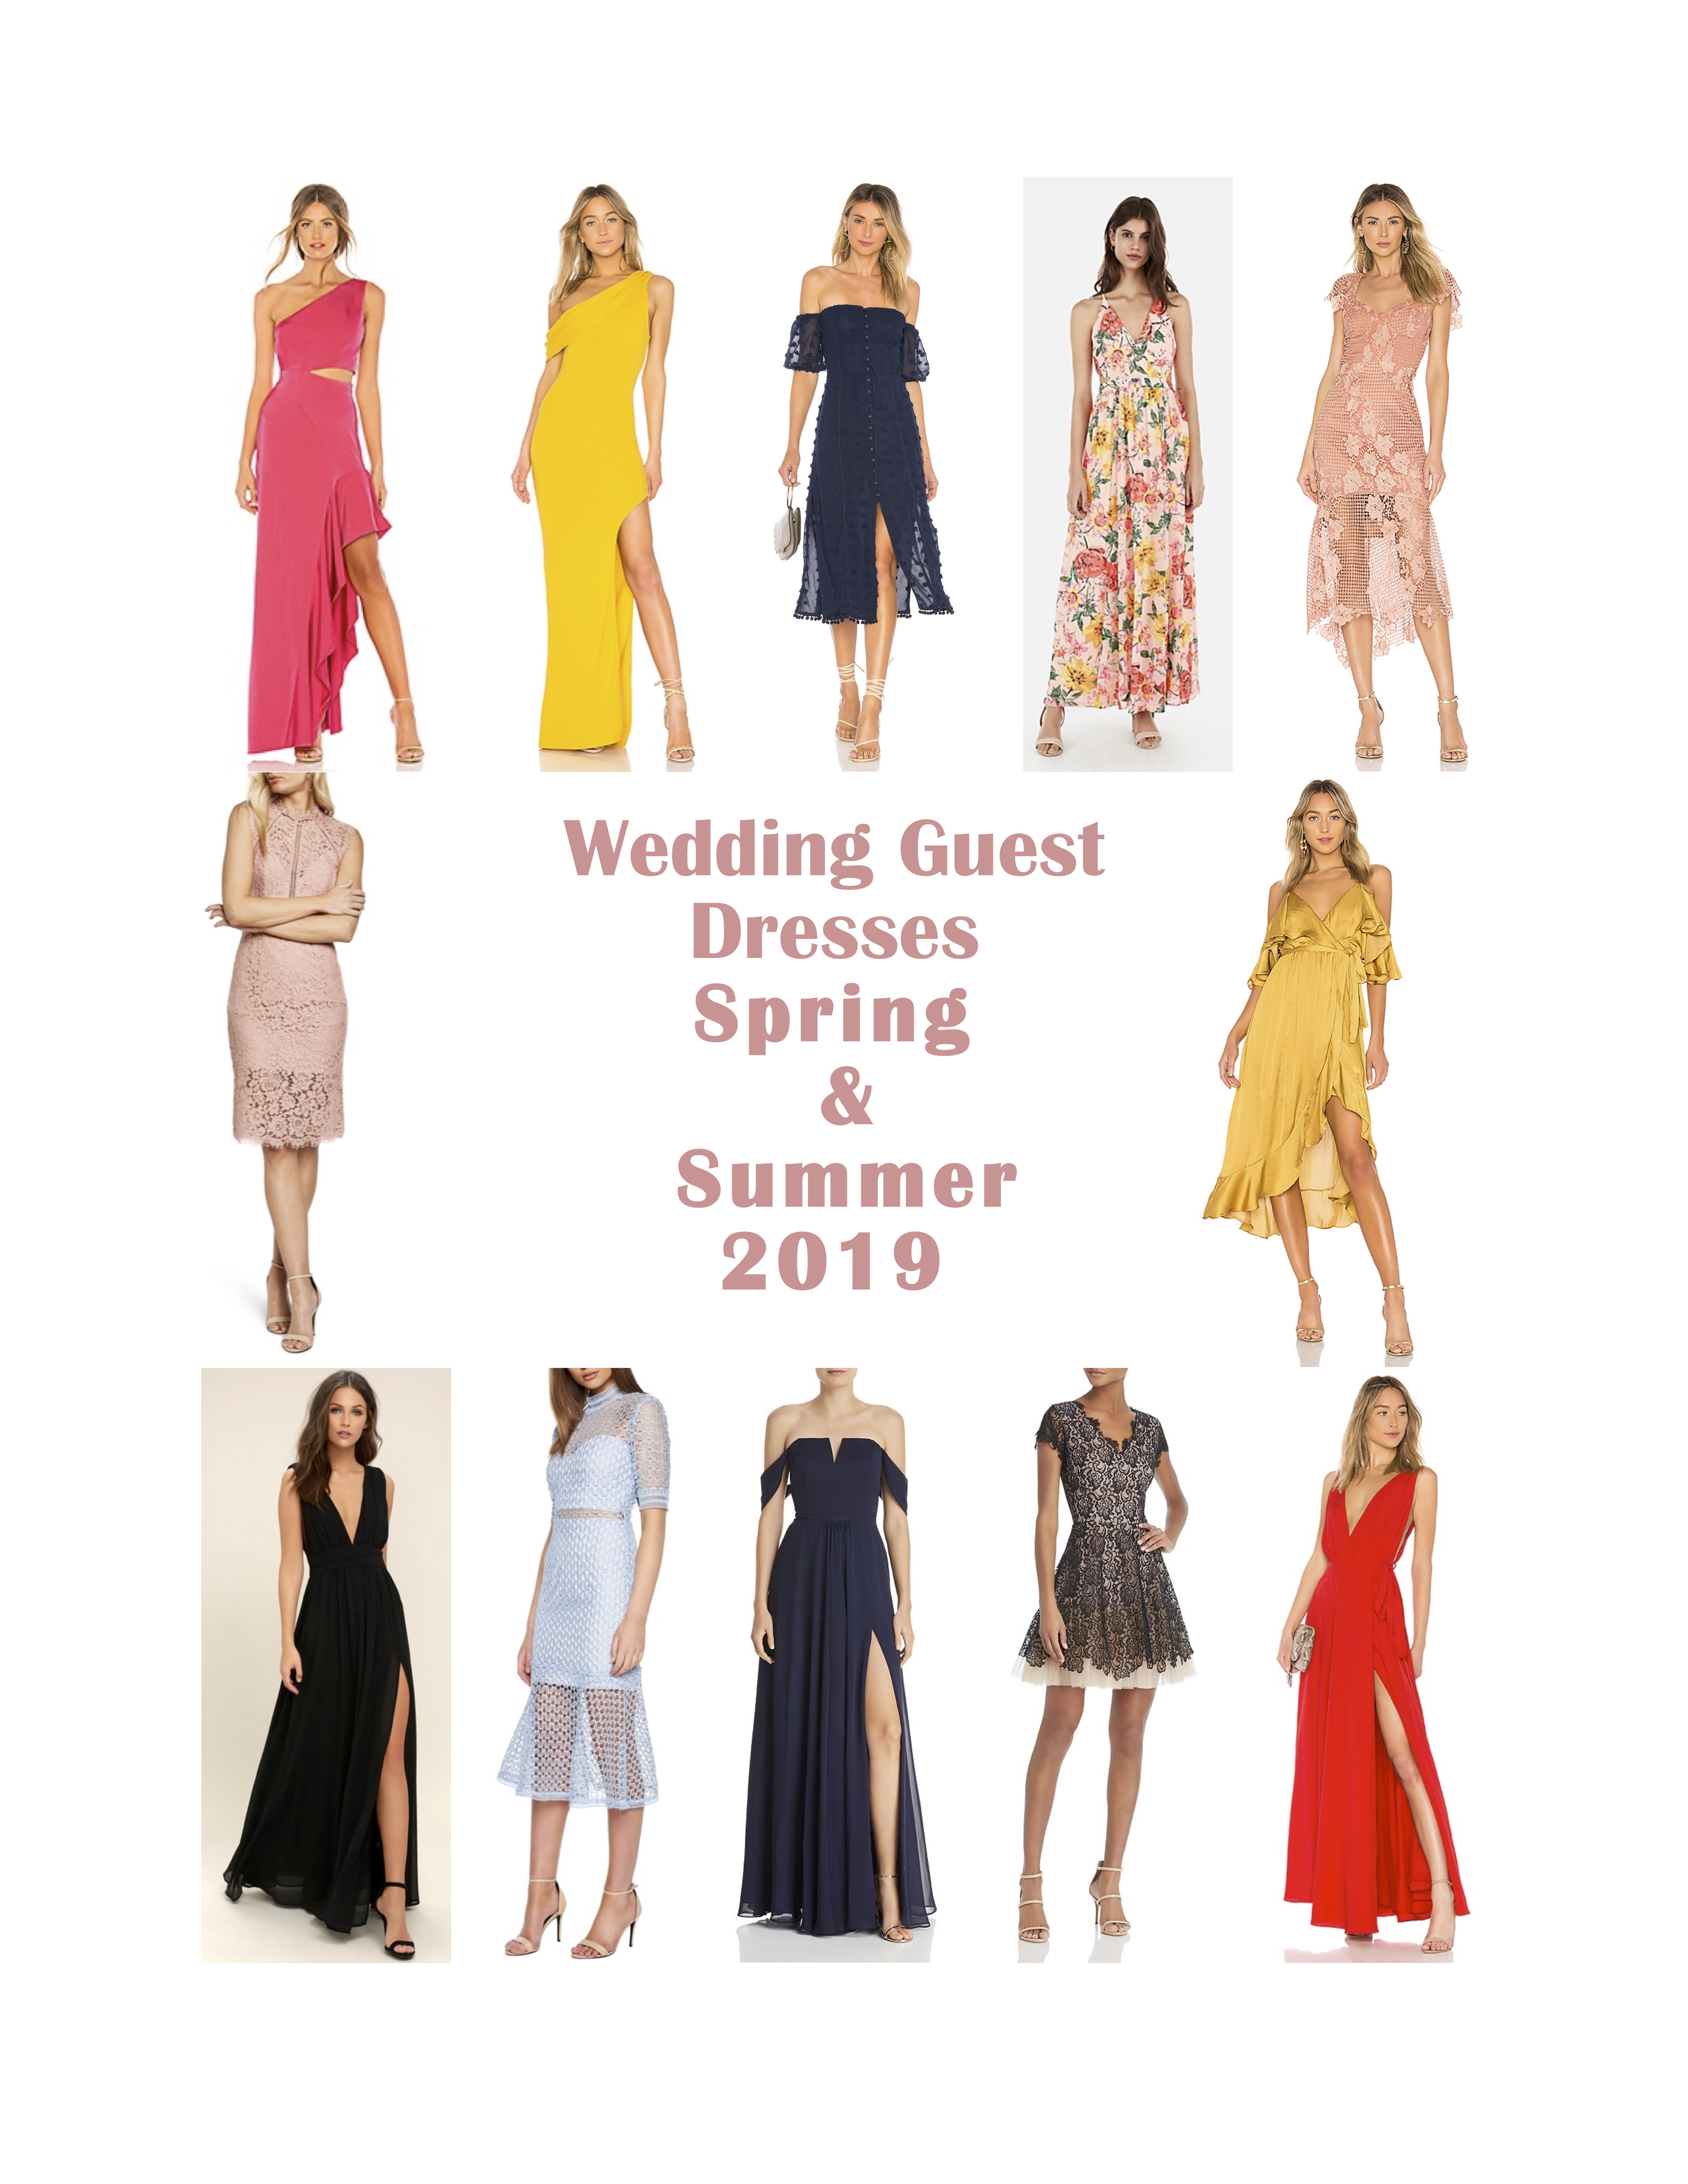 87629b8513bd4 With wedding season in full swing, I wanted to share a few suggestions to  carry you through this season's wedding circuit in style. From the casual  backyard ...